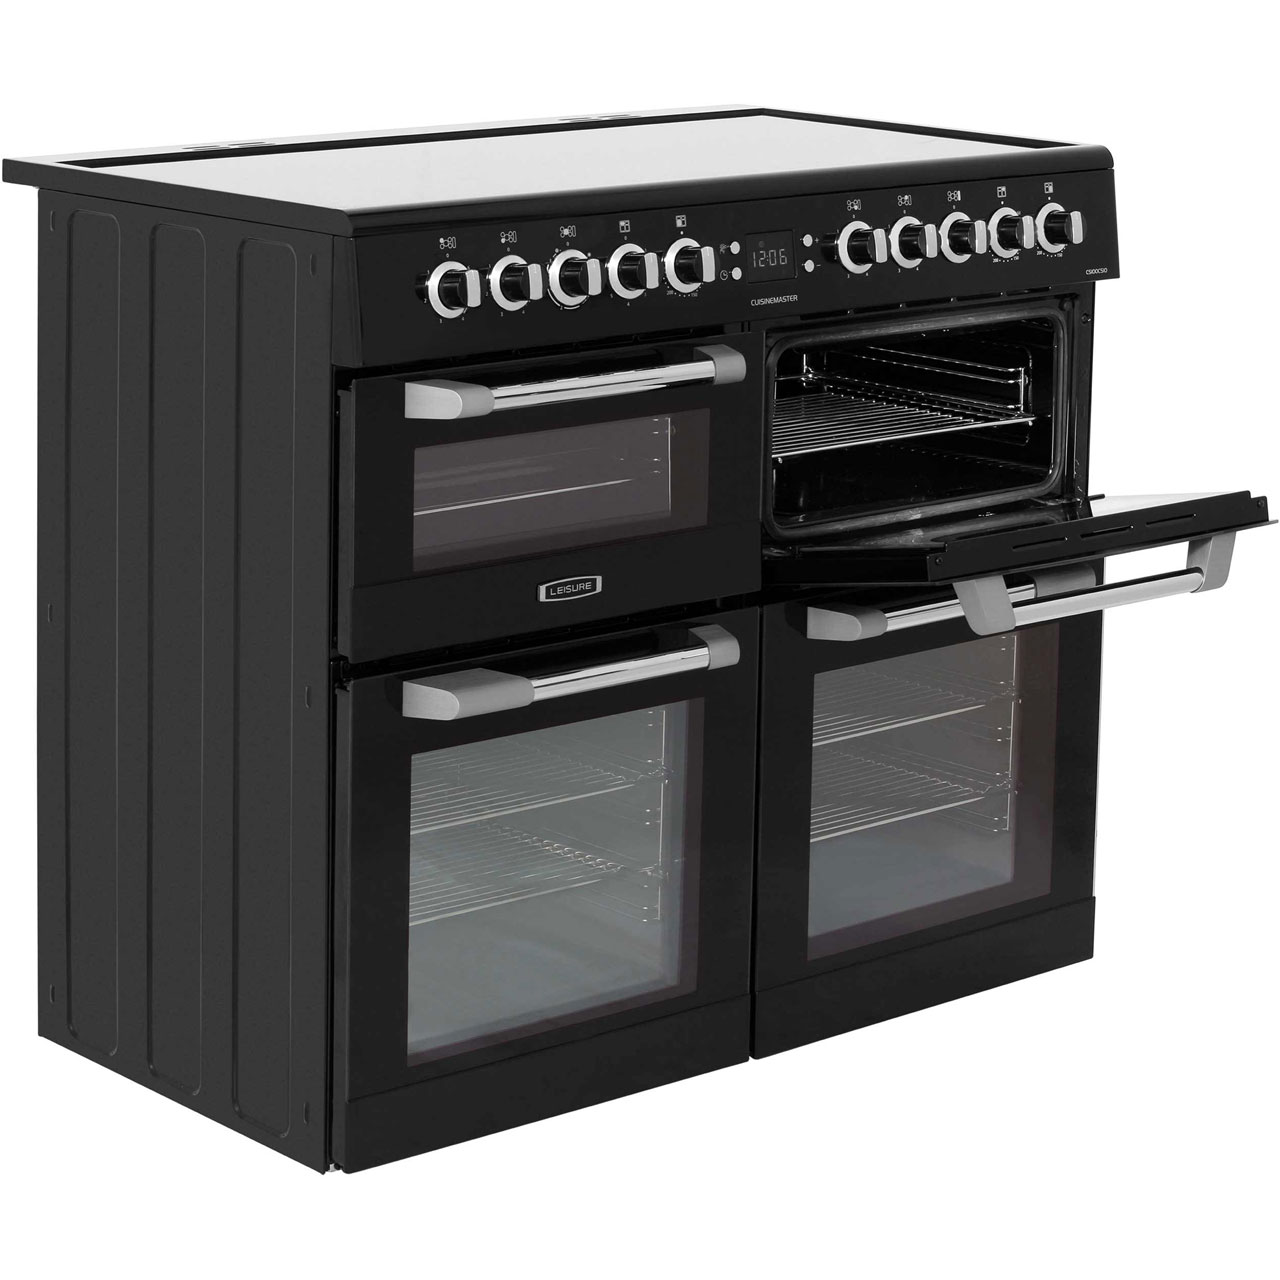 Leisure Cuisinemaster Cs100c510k Electric Range Cooker Black